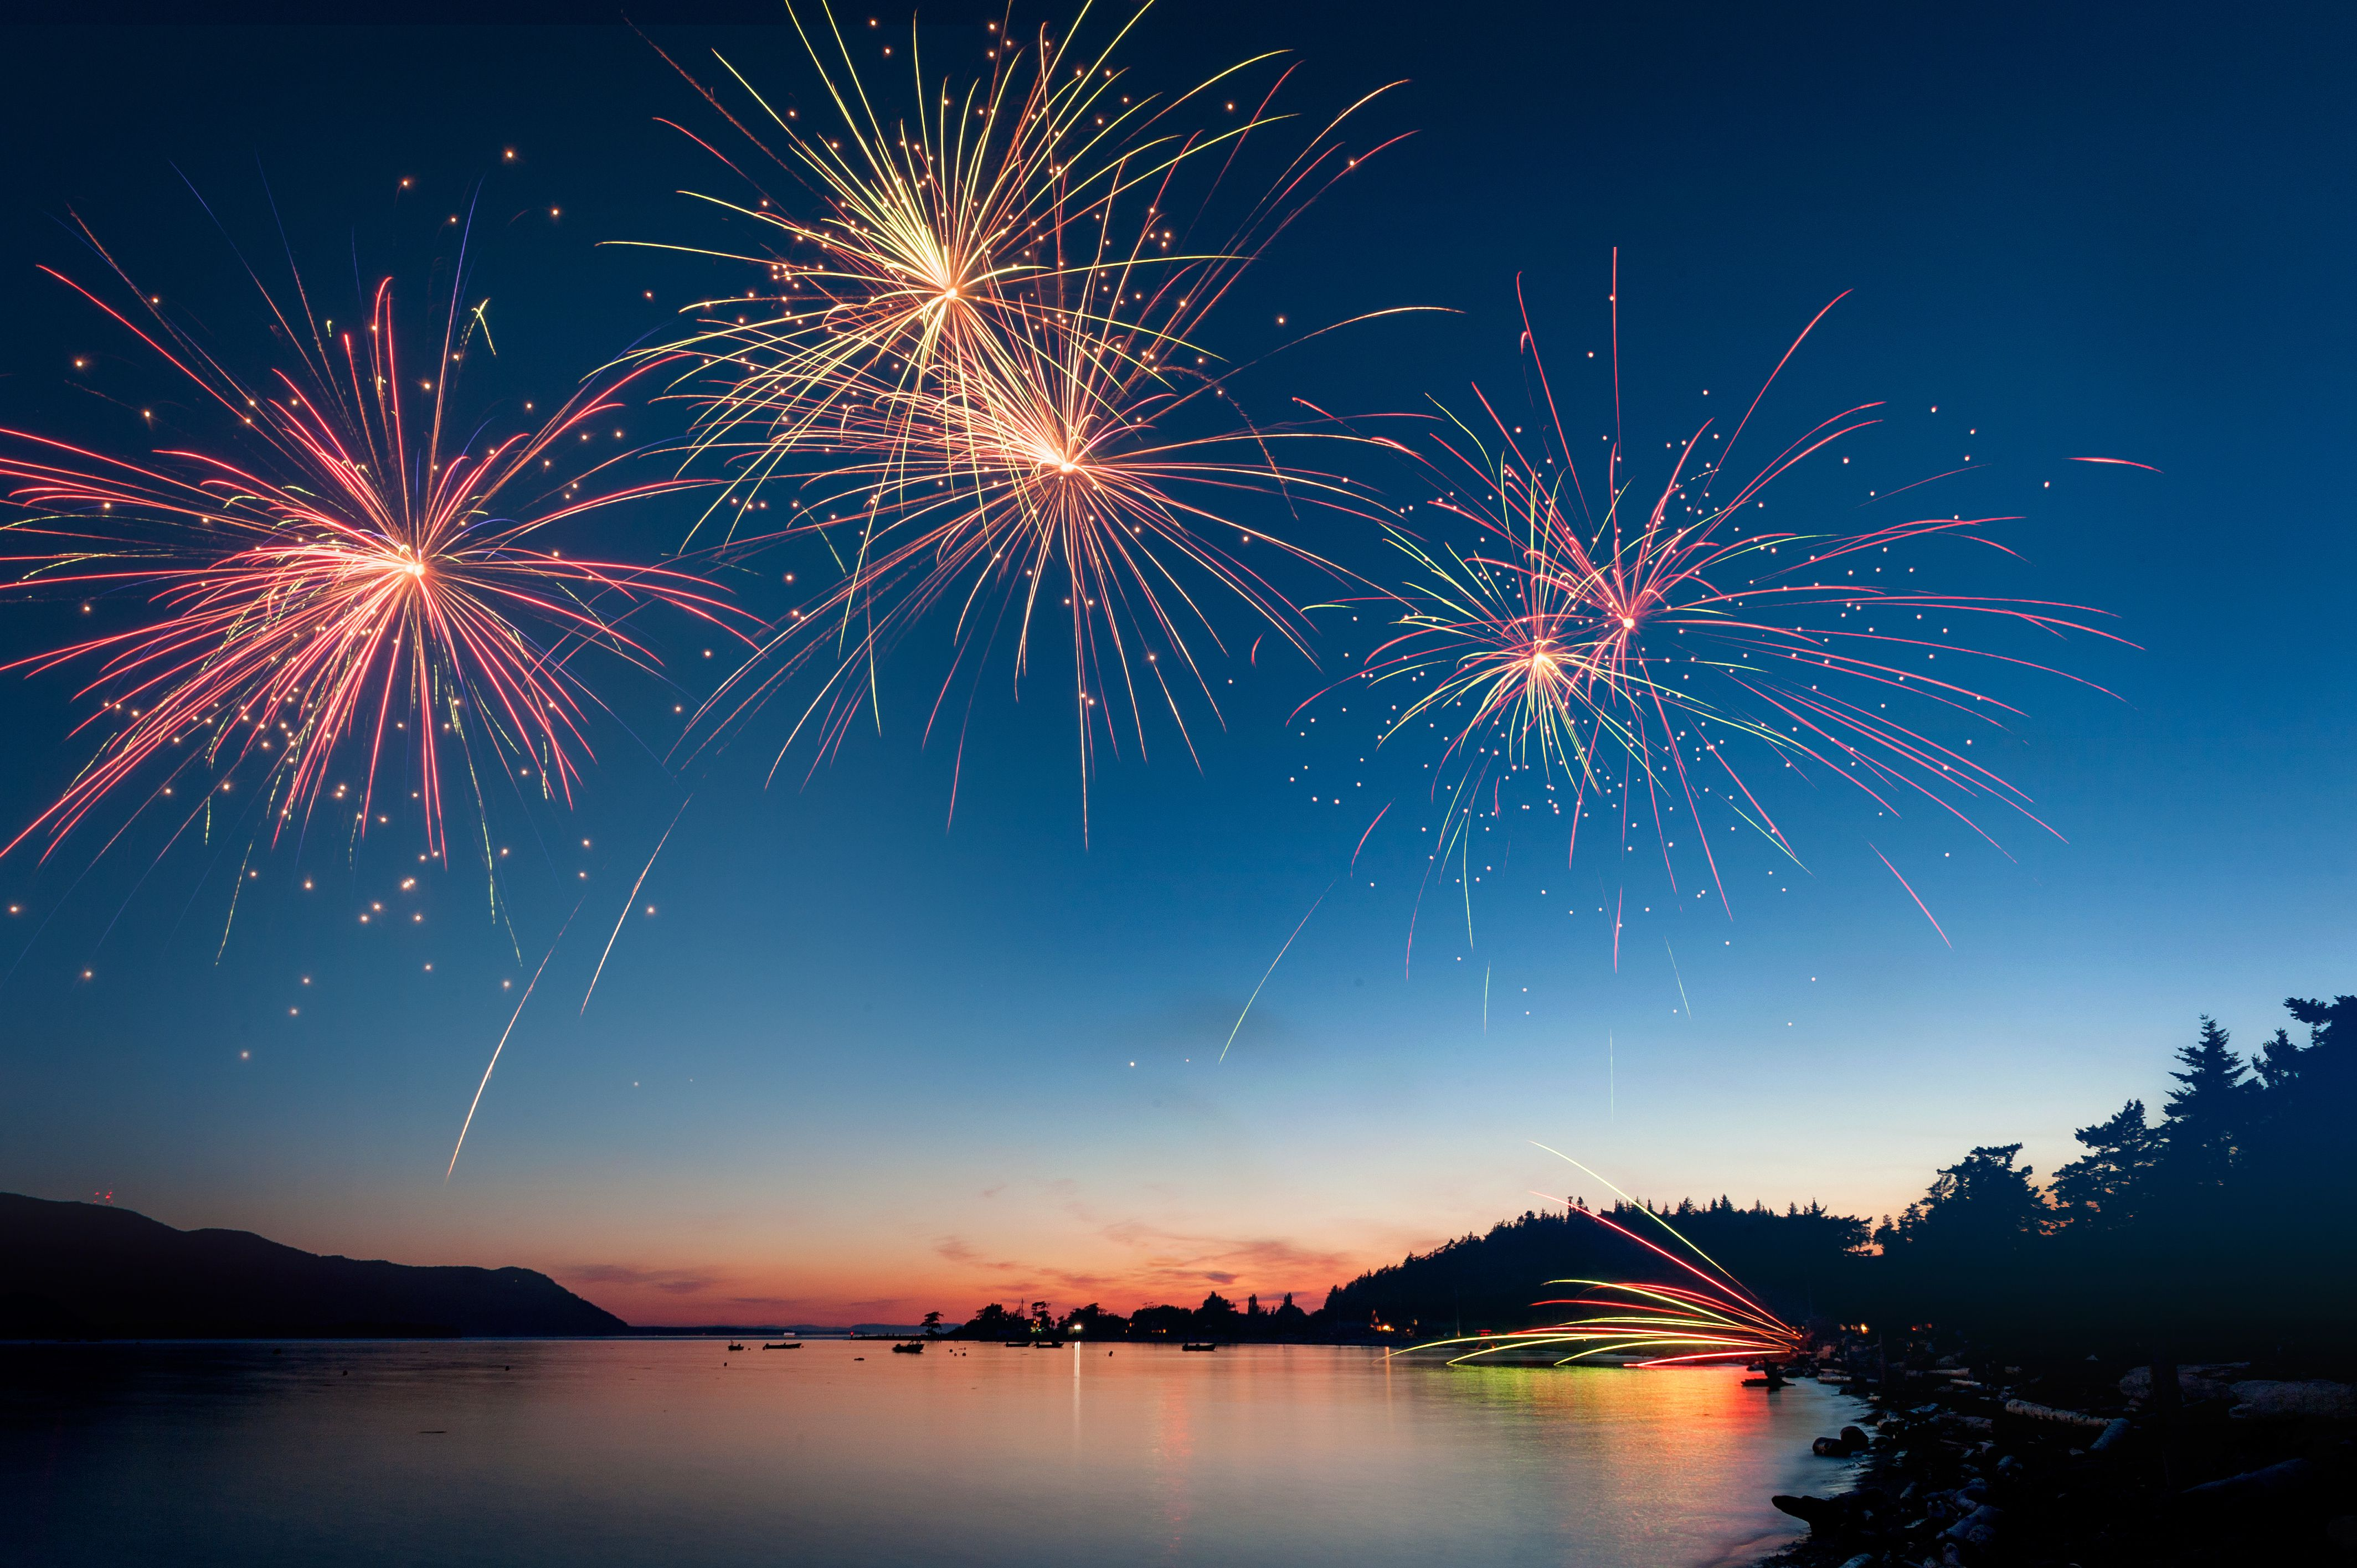 Names and Functions of Chemical Elements in Fireworks